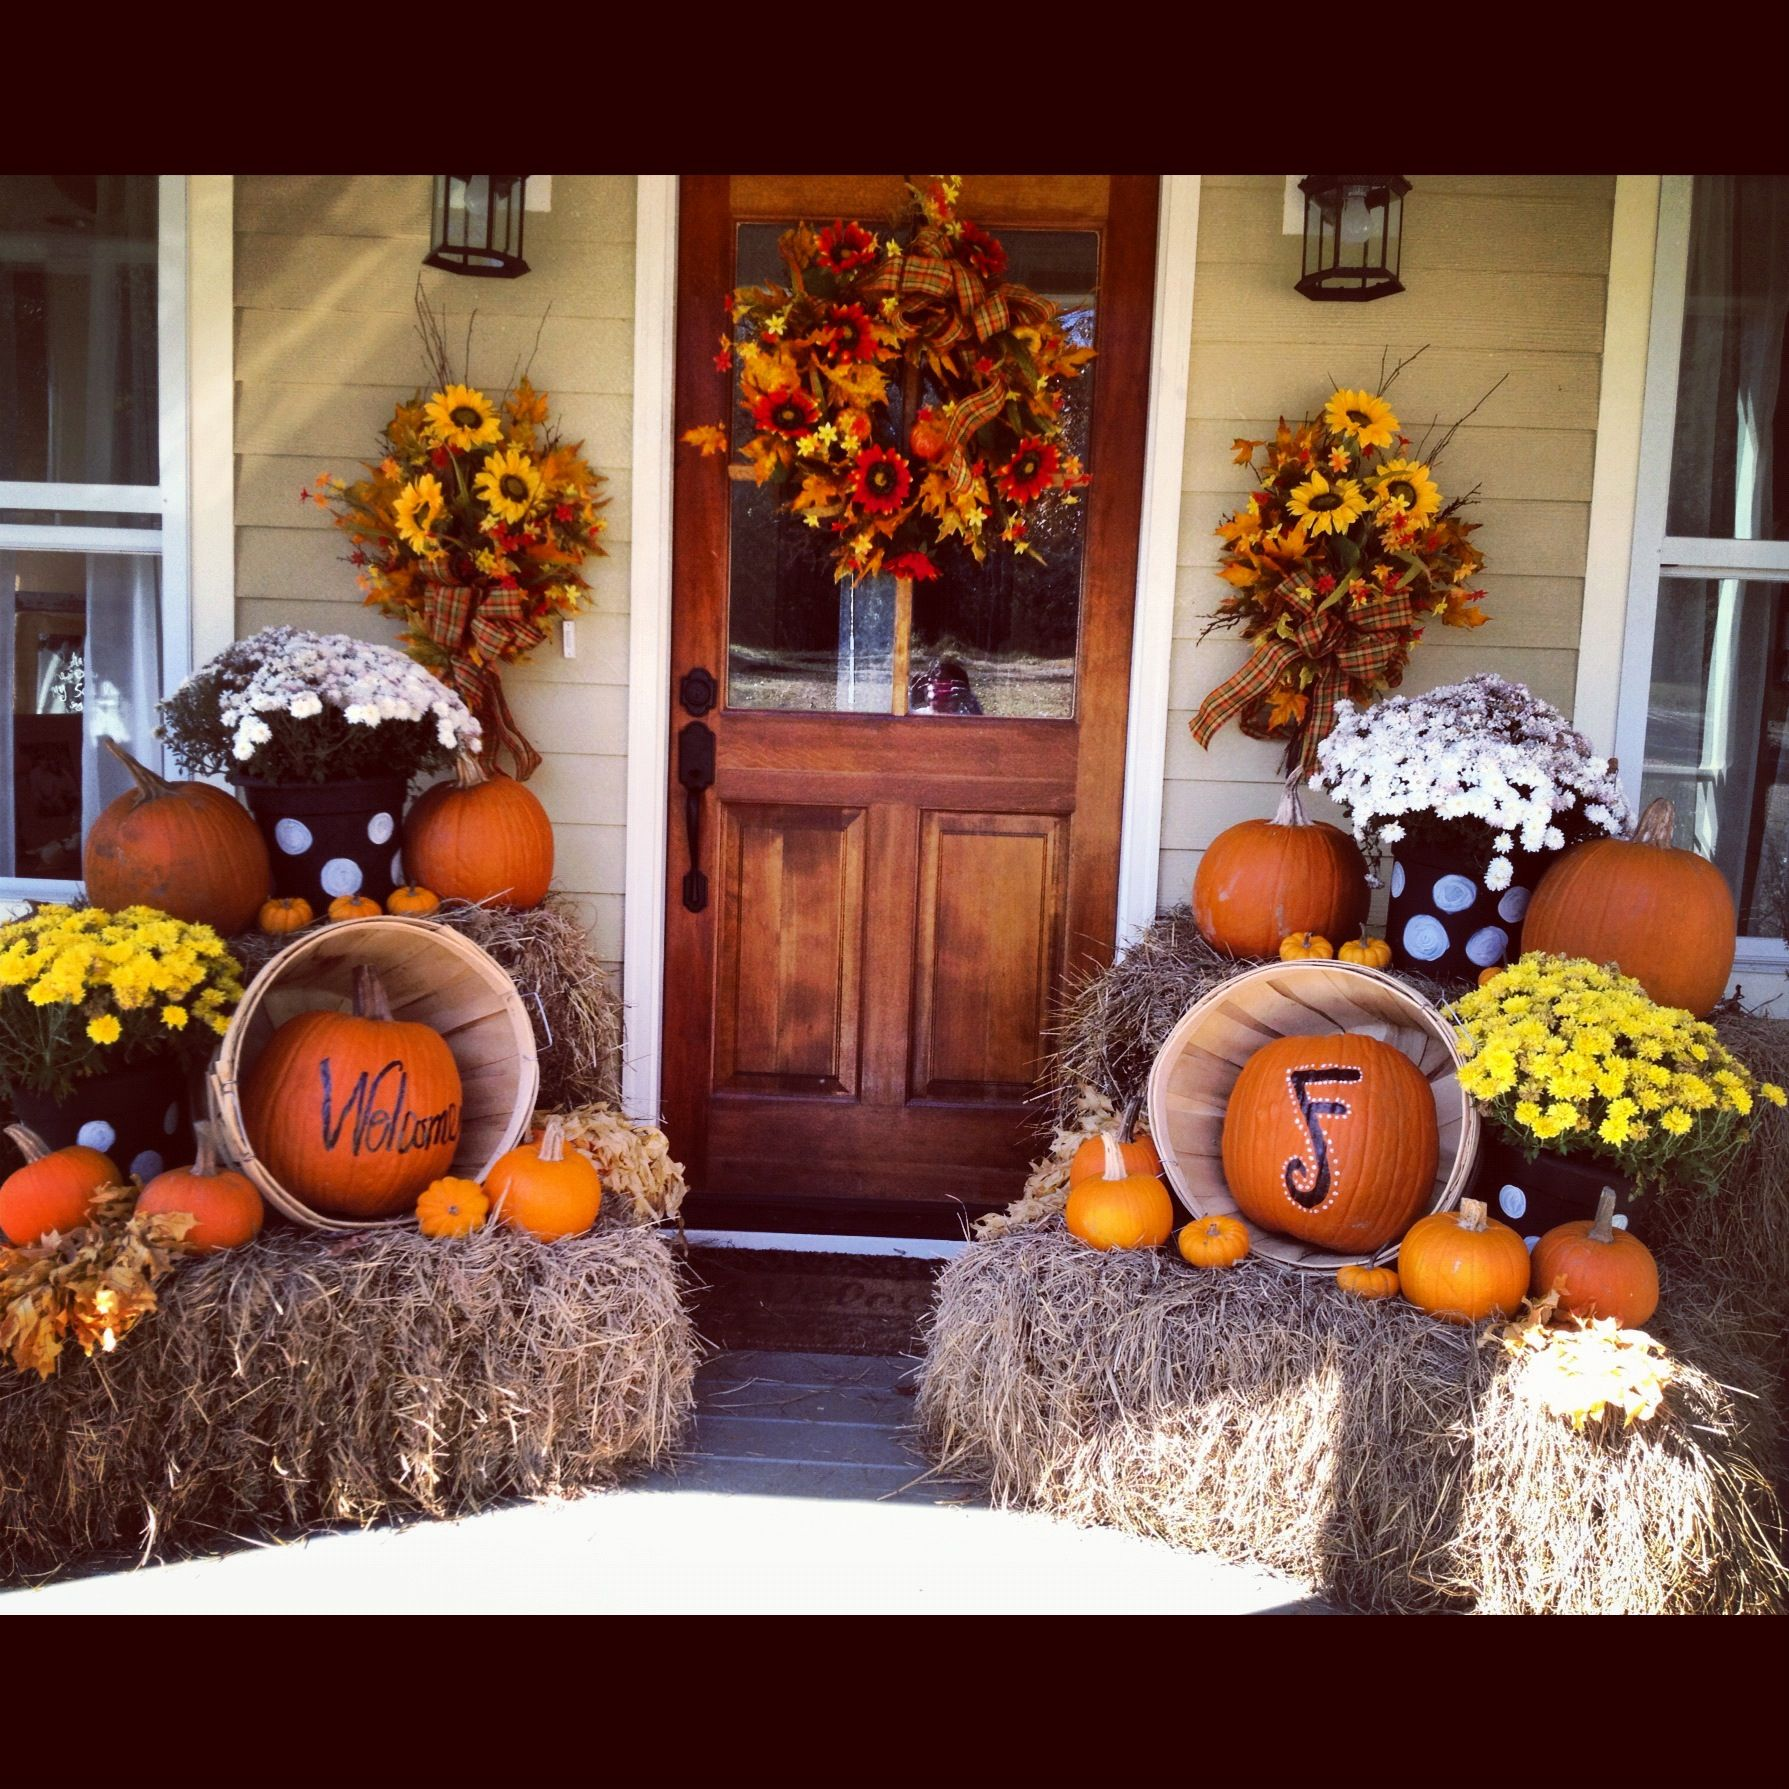 Autumn Yard Decorations: Love The Decorations But Really Love The Front Door